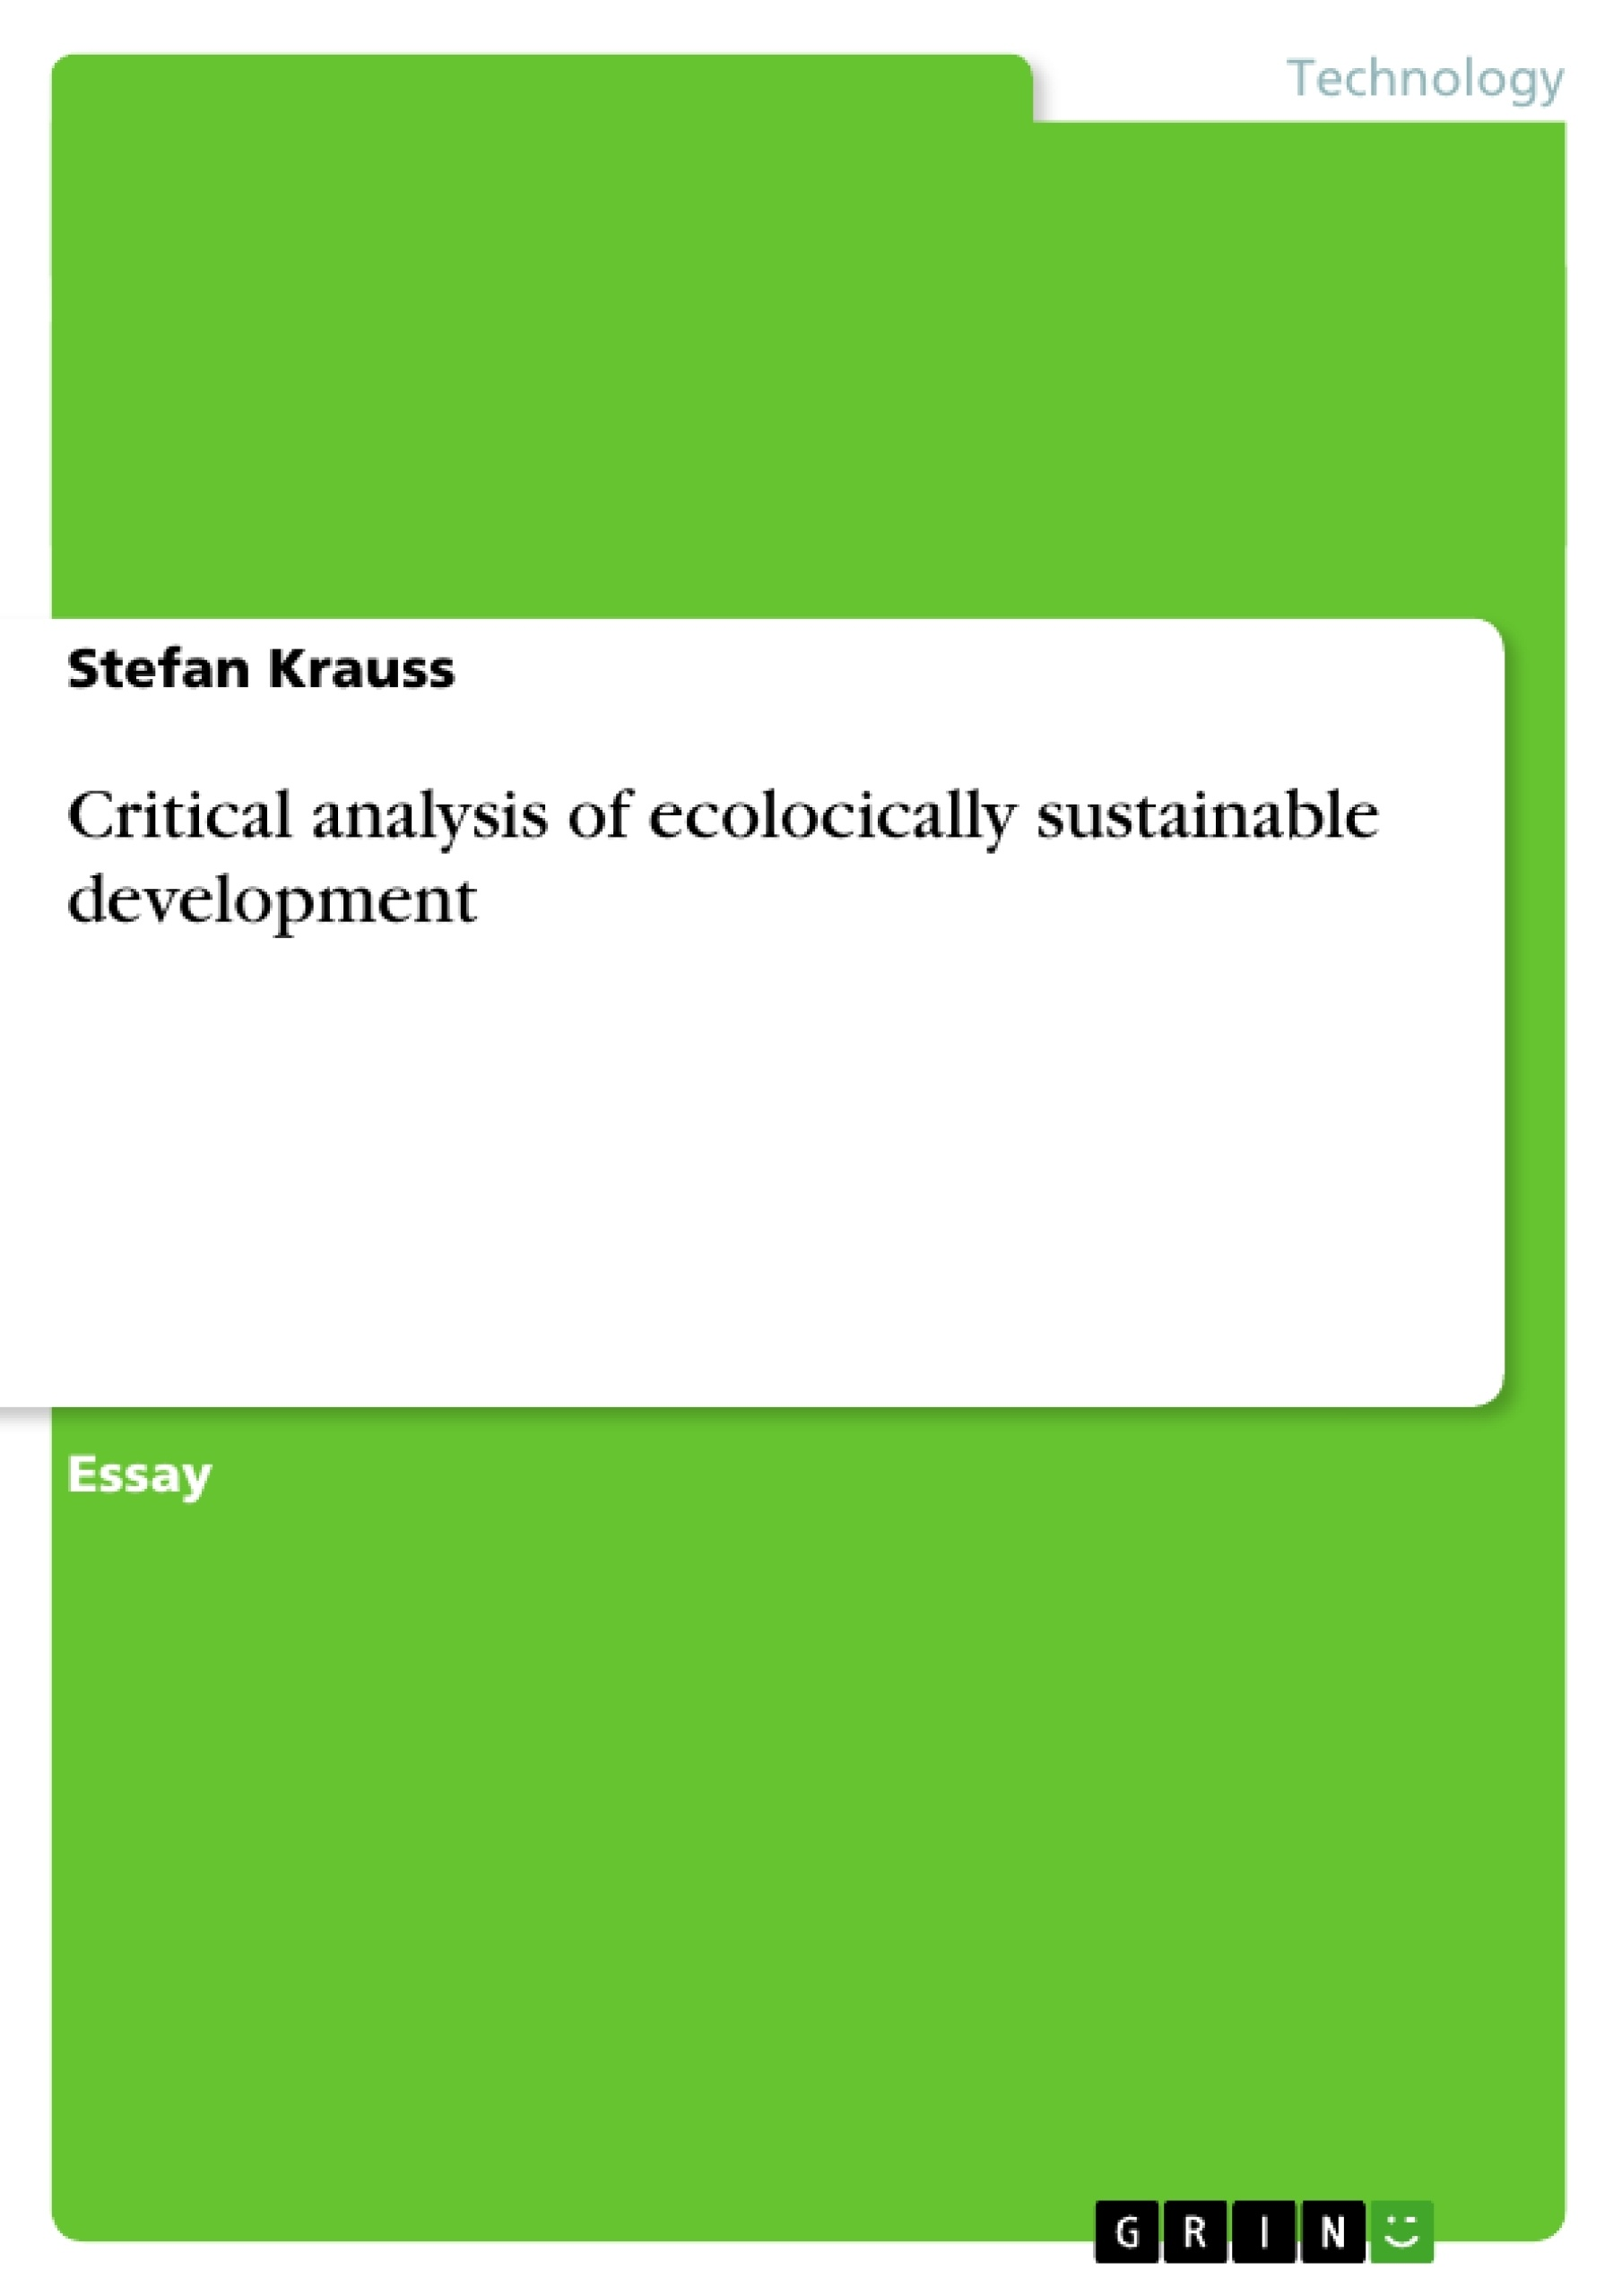 Title: Critical analysis of ecologically sustainable development